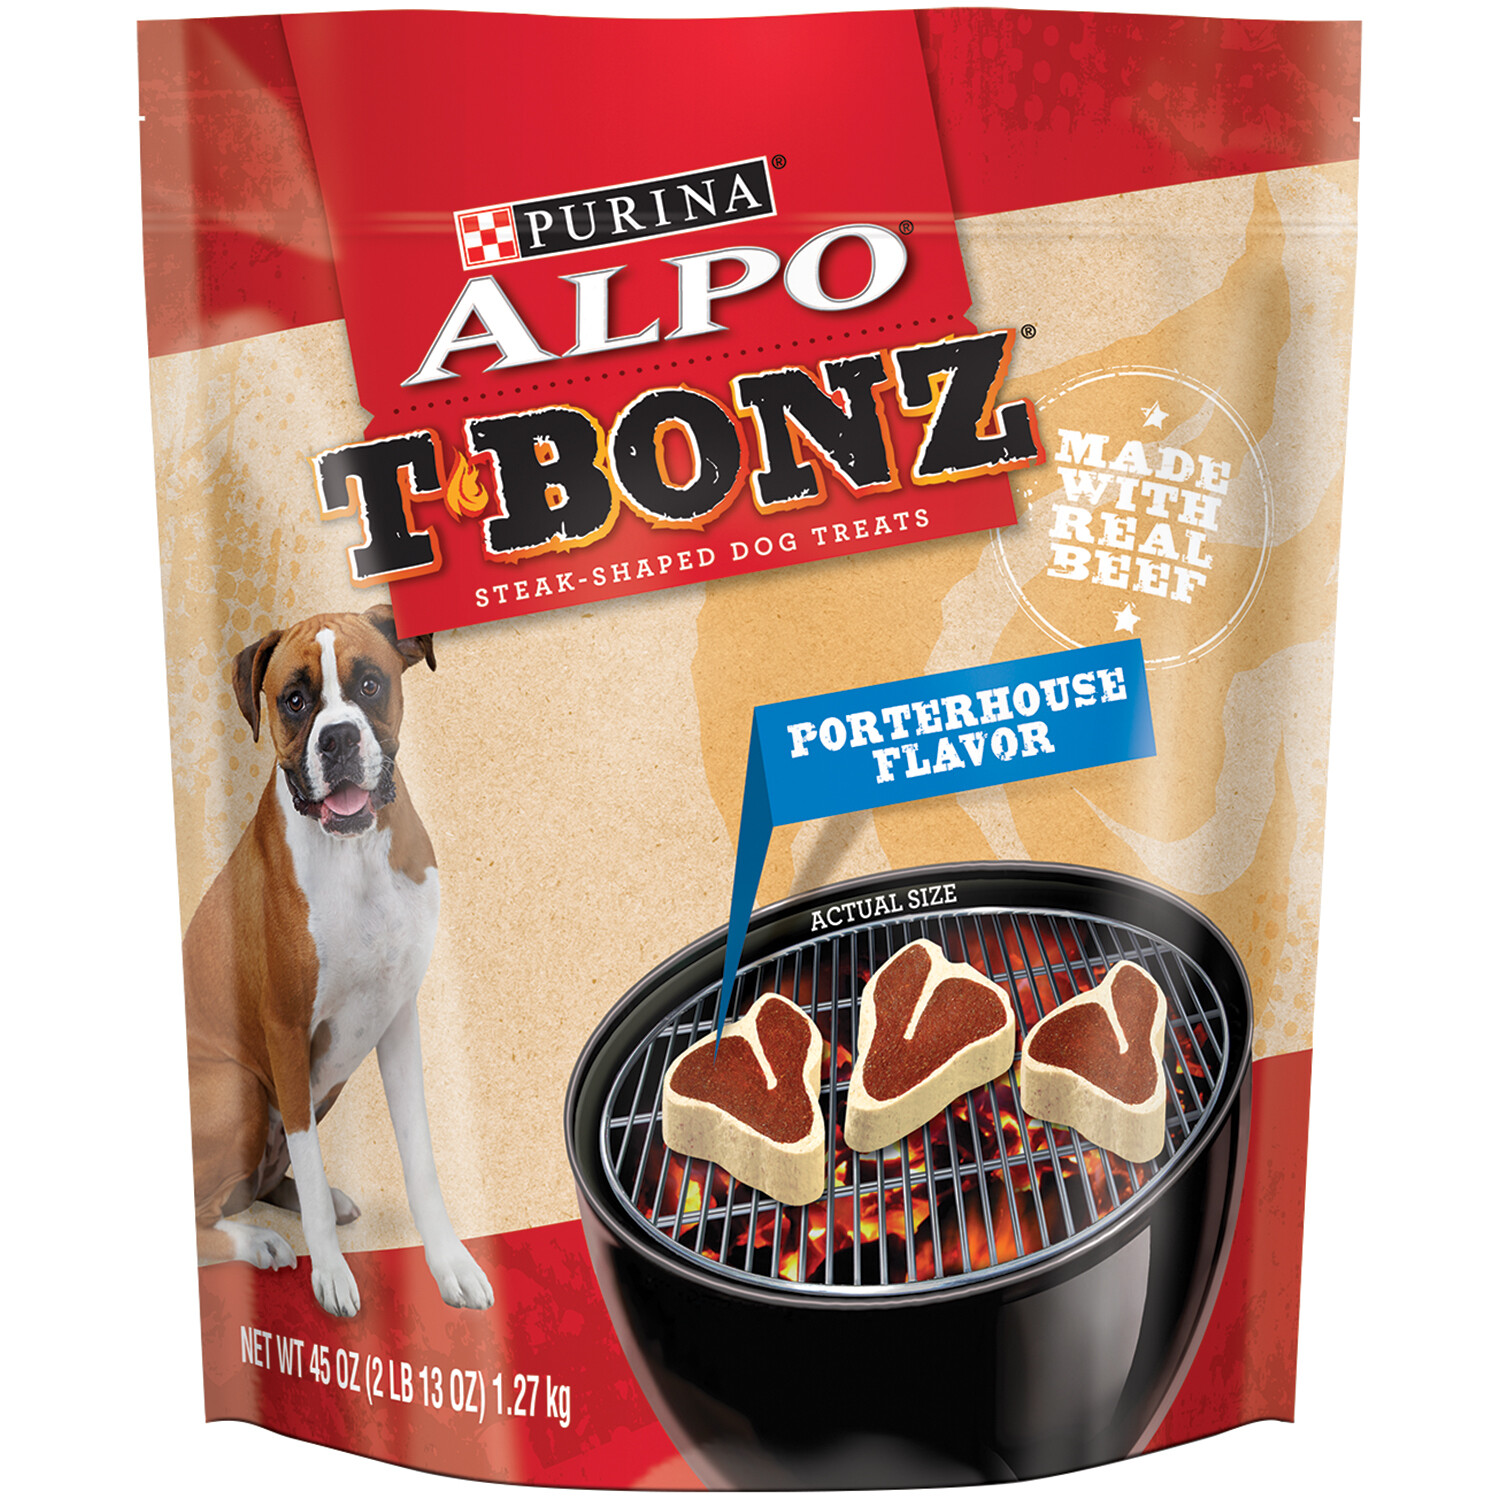 ALPO T-Bonz Porterhouse Flavor Dog Treats, 45 oz